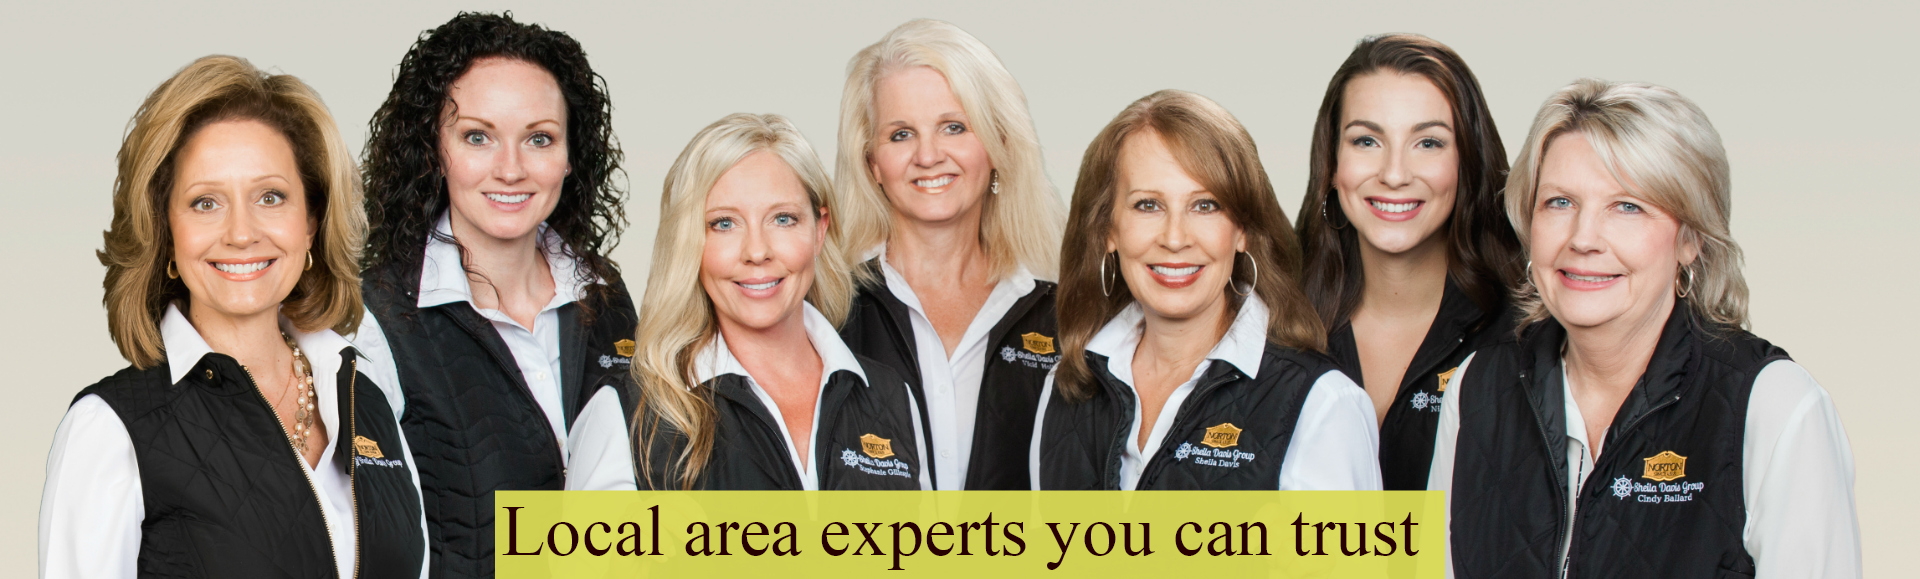 update 6 2019 Local area experts 2019